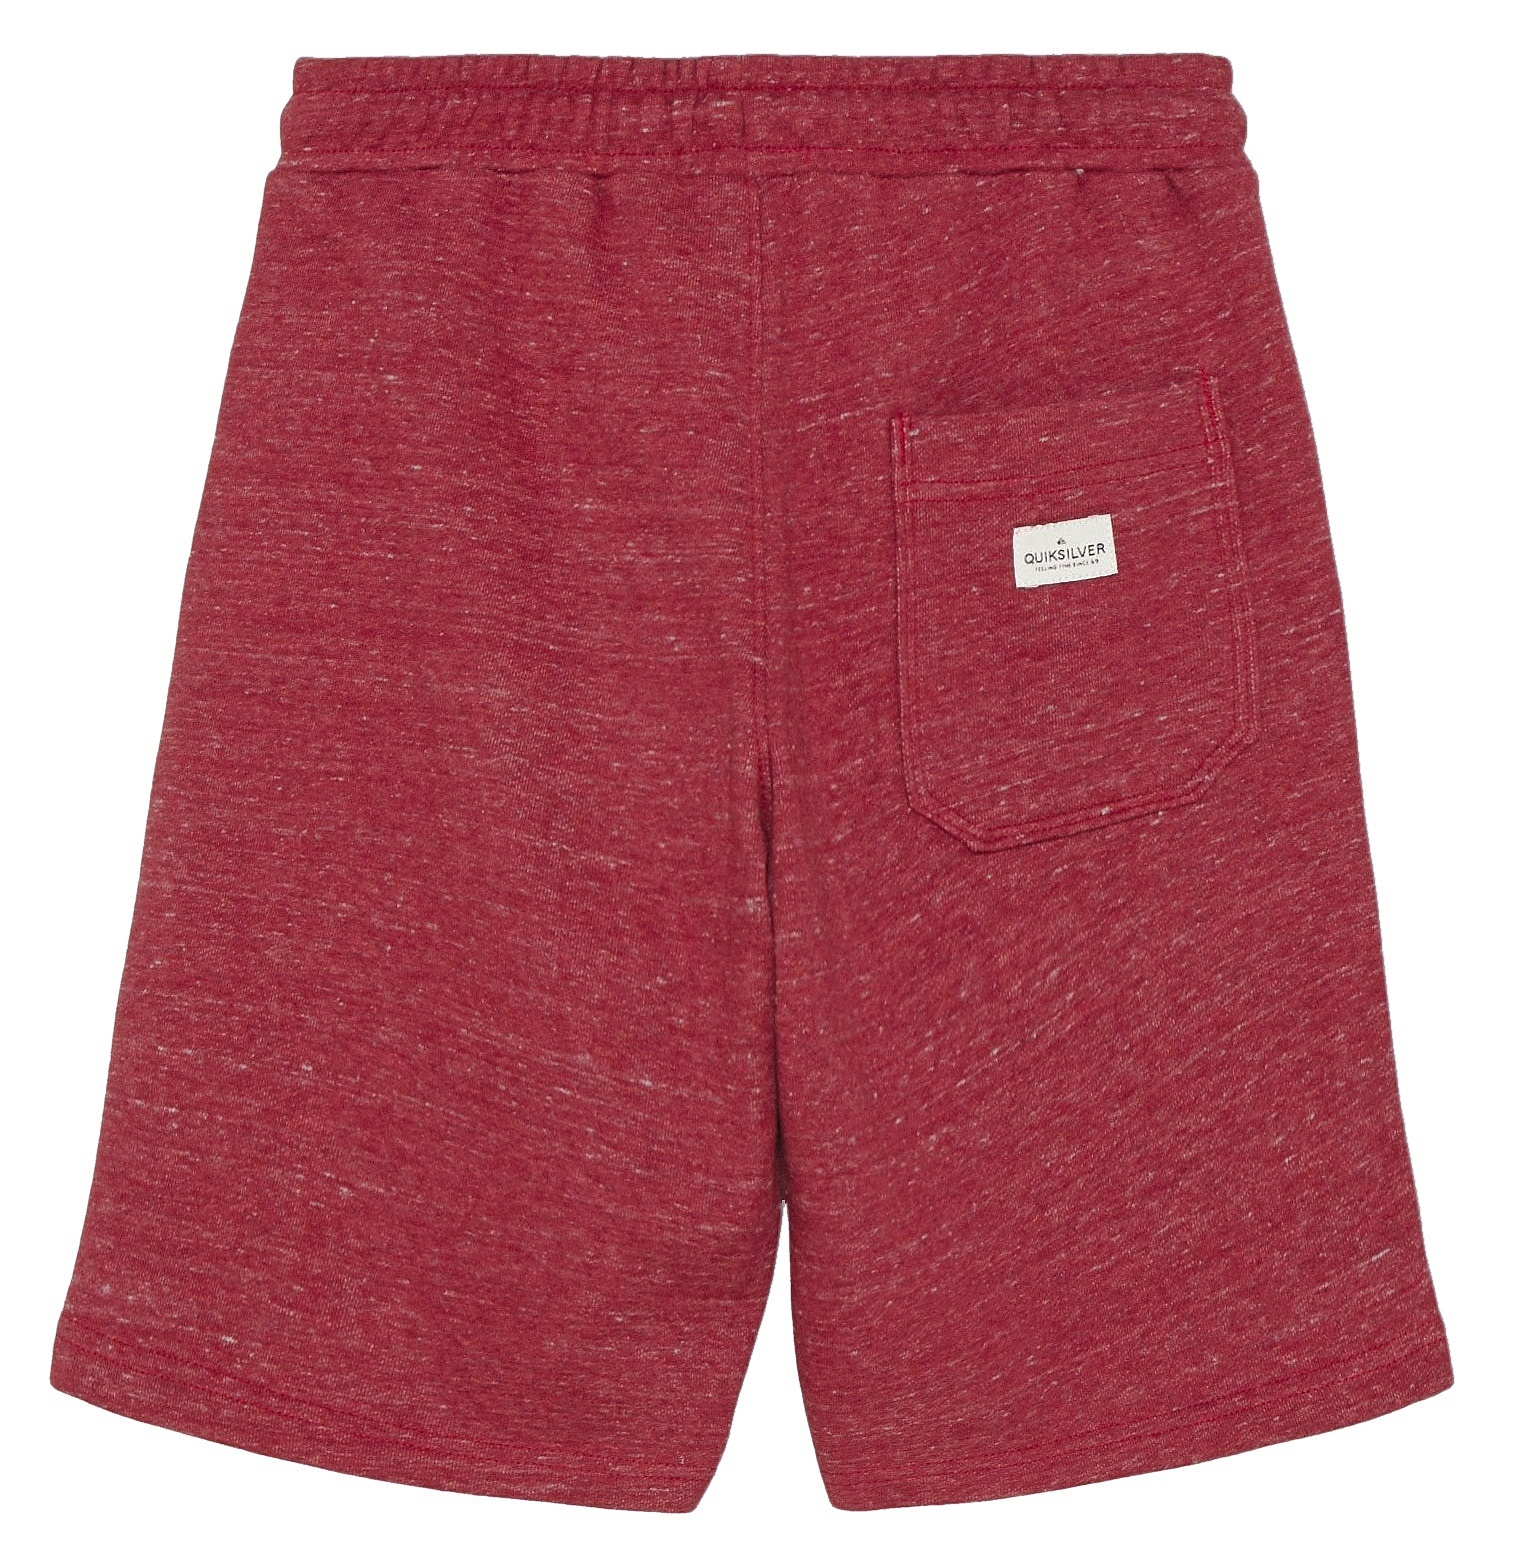 kraťasy Quiksilver Easy Day - RPYH/American Red Heather